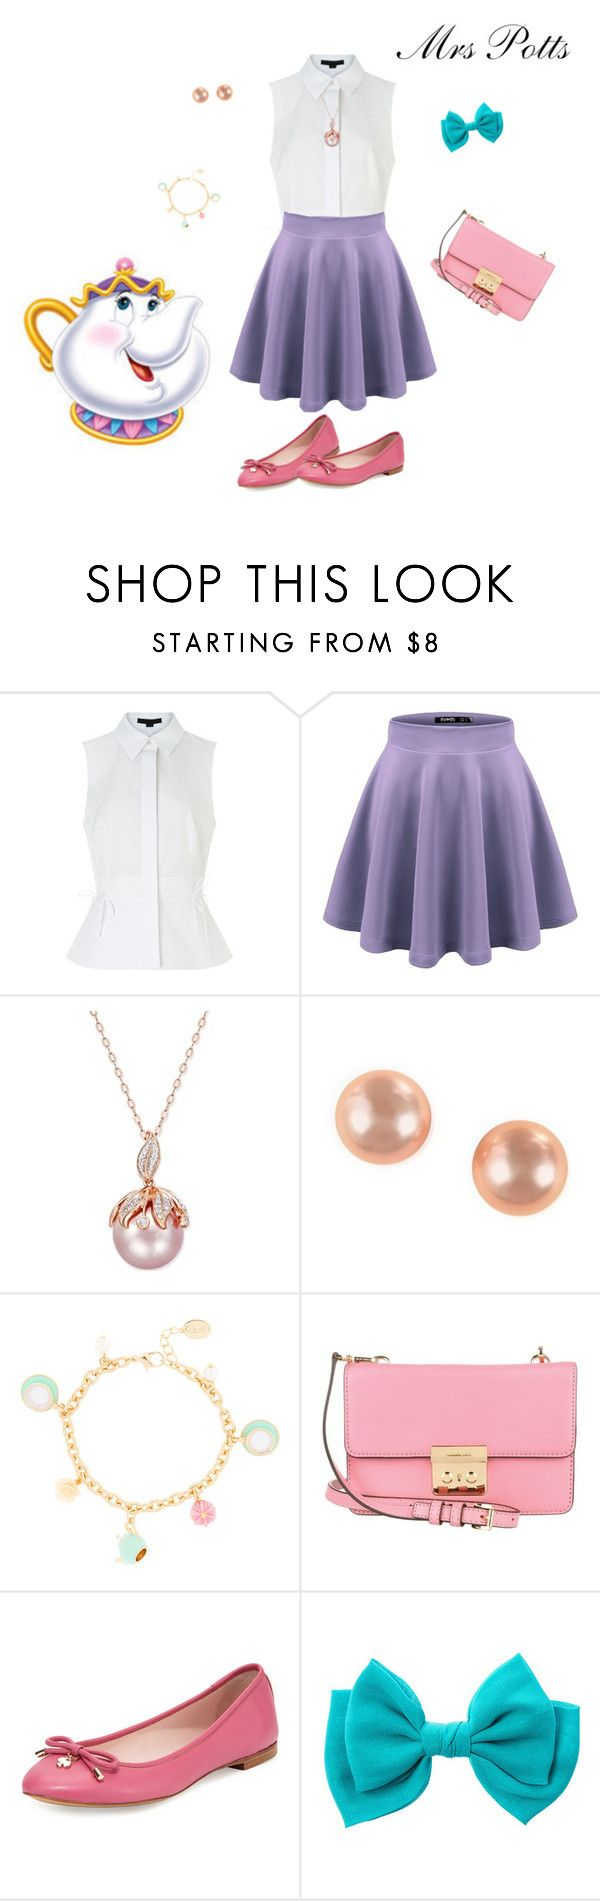 """Mrs Potts"" by tizzy-potts ❤ liked on Polyvore featuring Alexander Wang, Effy Jewelry, Michael Kors, Kate Spade, disney, BeautyandtheBeast, teapot and MrsPotts"